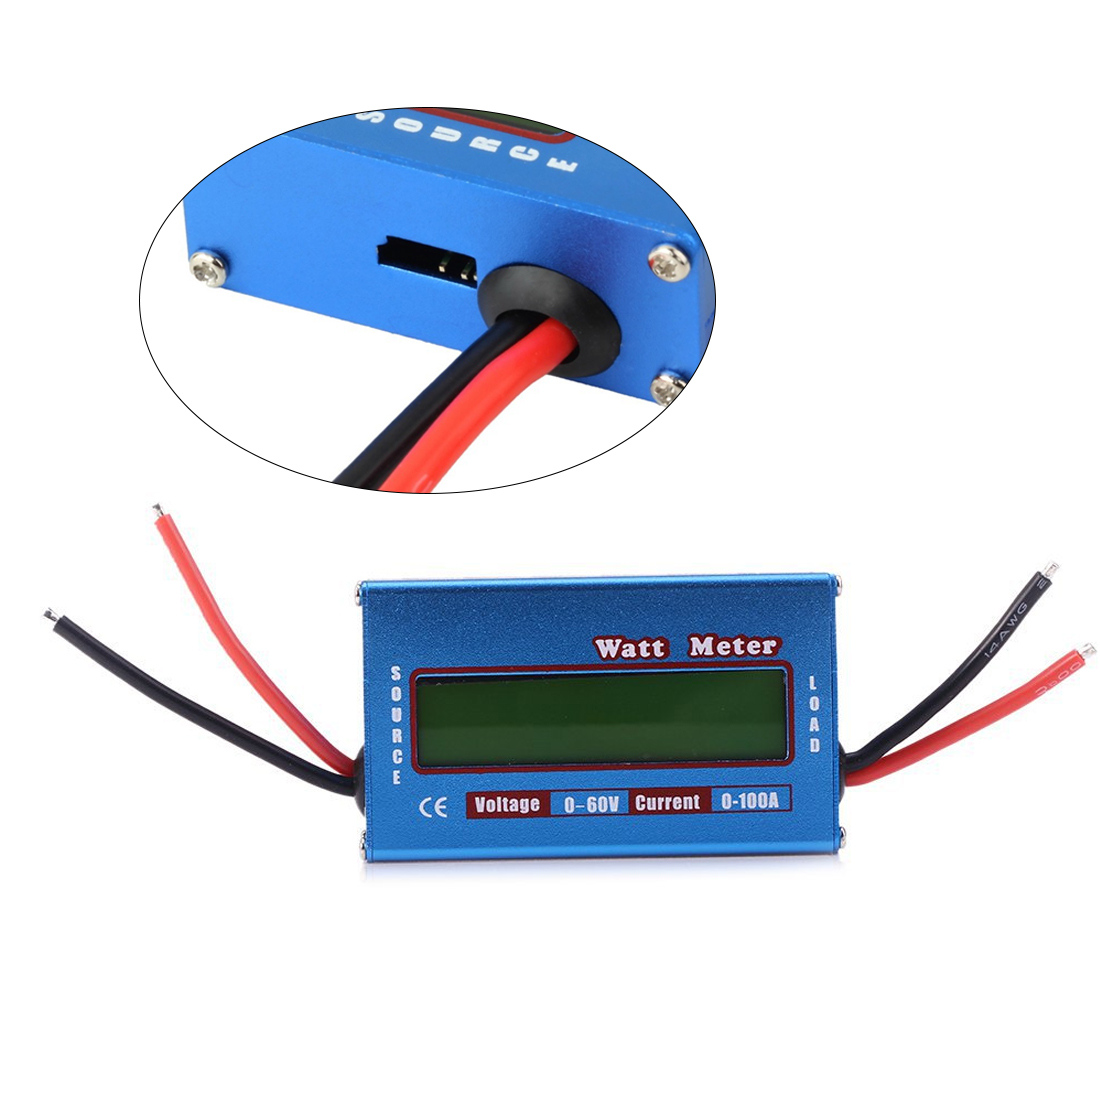 Analyzer Watt Meter Digital LCD For DC 60V/100A Balance Voltage RC Battery Power Watt's figure Power analyzer new digital balance voltage power watt meter analyzer tester checker for rc helicopter battery charger 60v 100a wattmeter